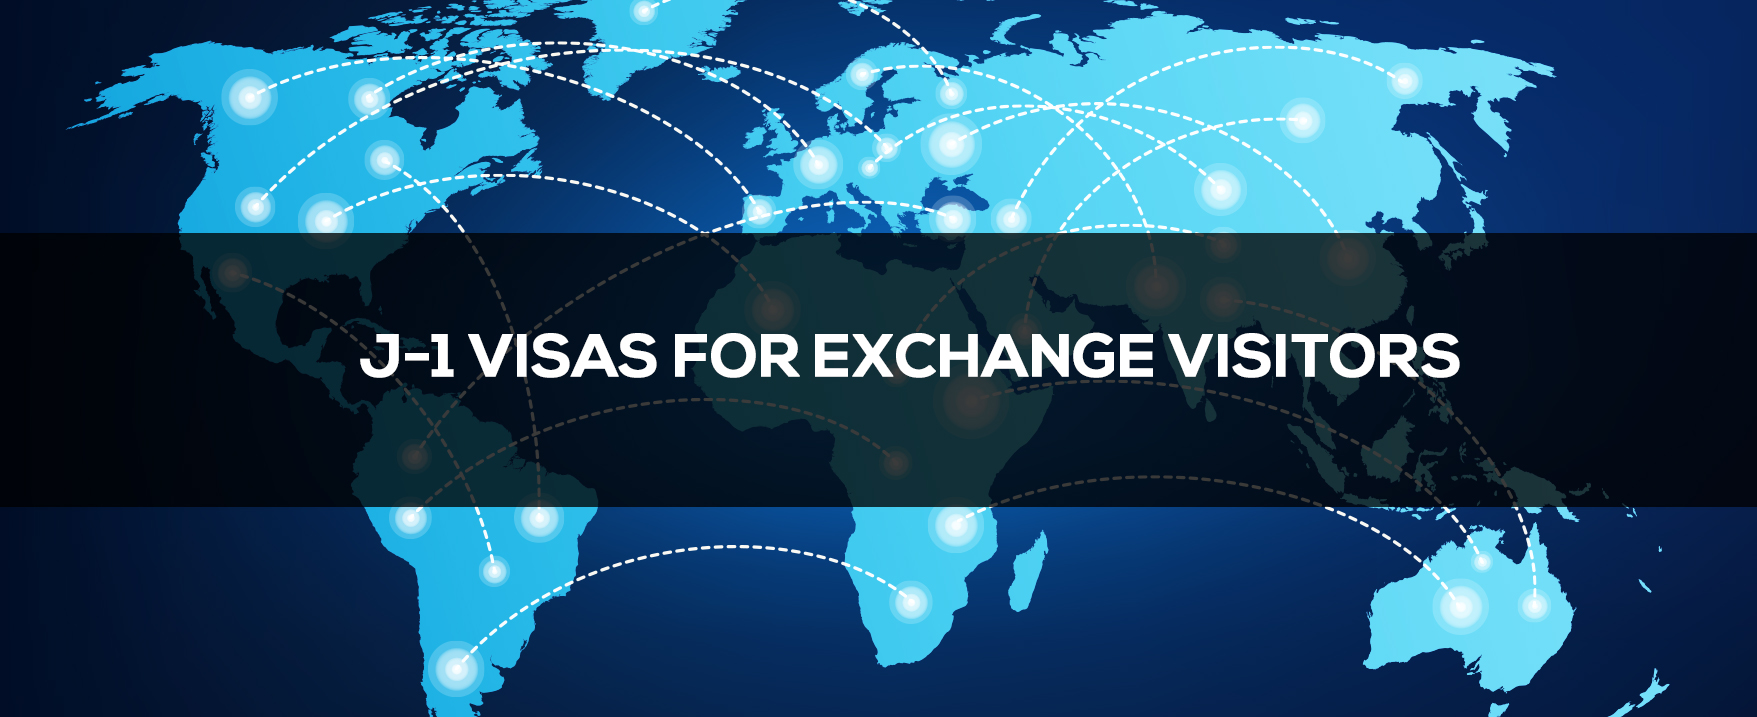 J-1 Visas for Exchange Visitors